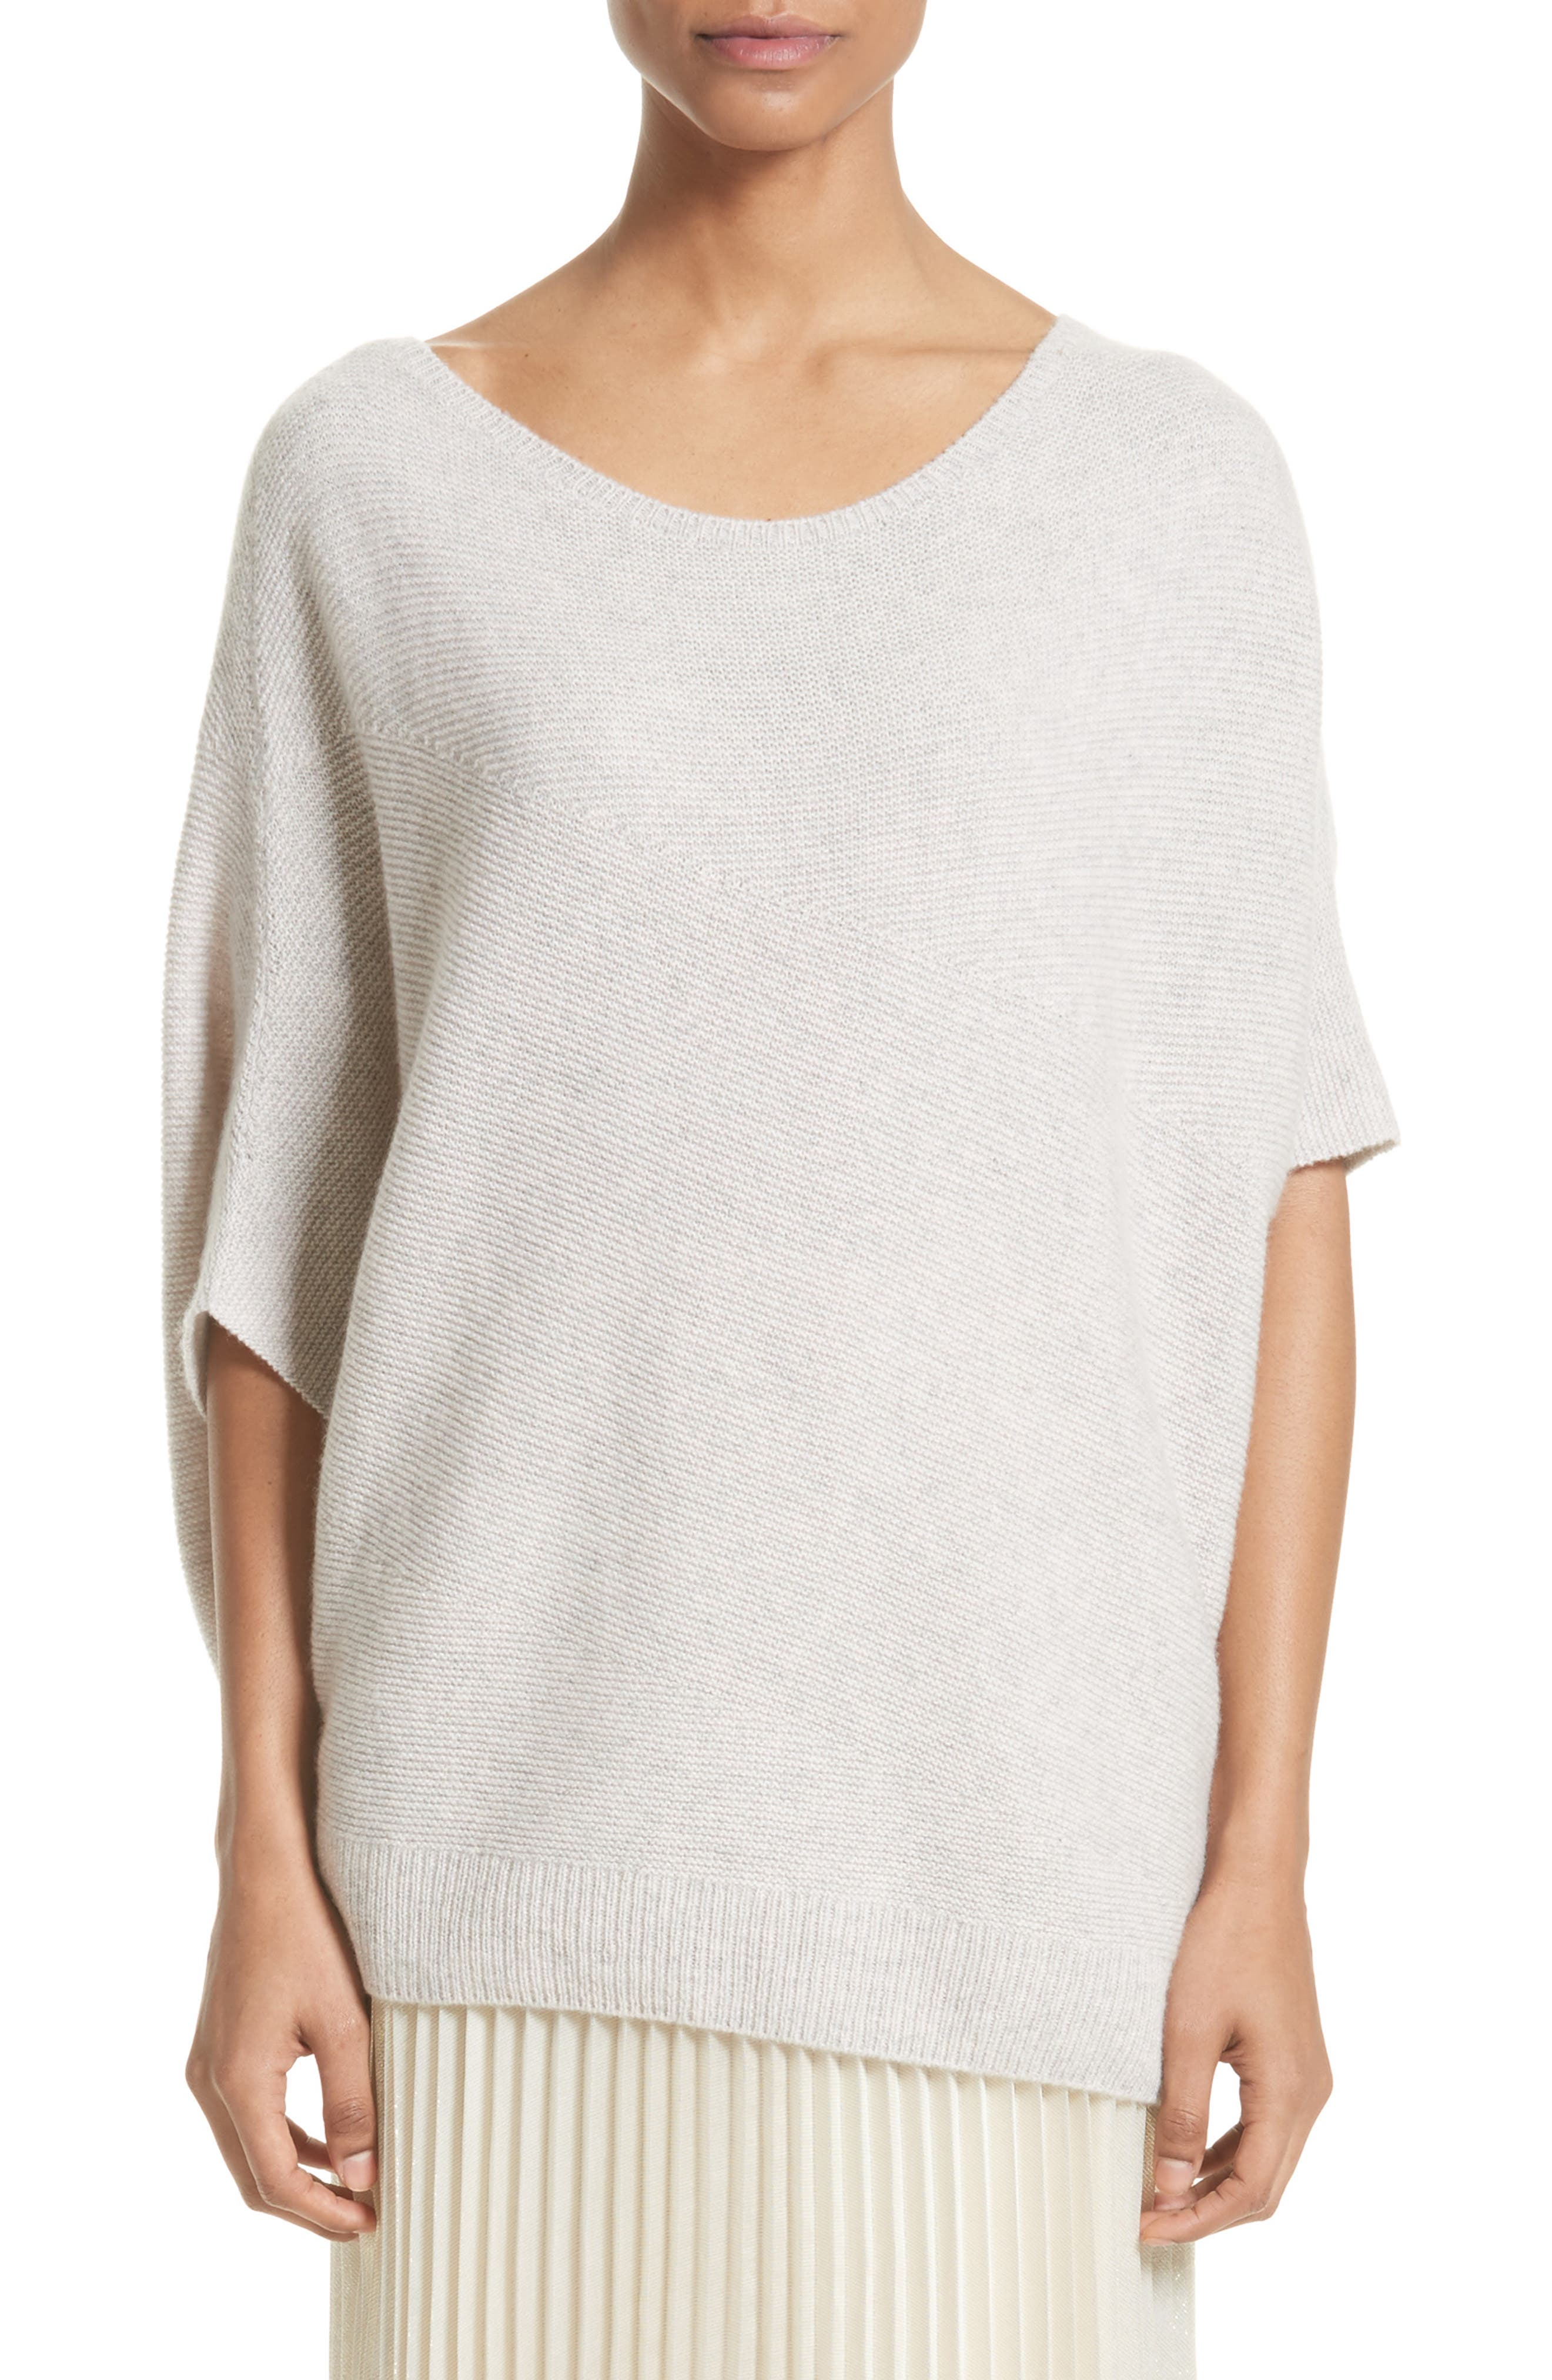 Alternate Image 1 Selected - St. John Collection Cashmere Asymmetrical Sweater